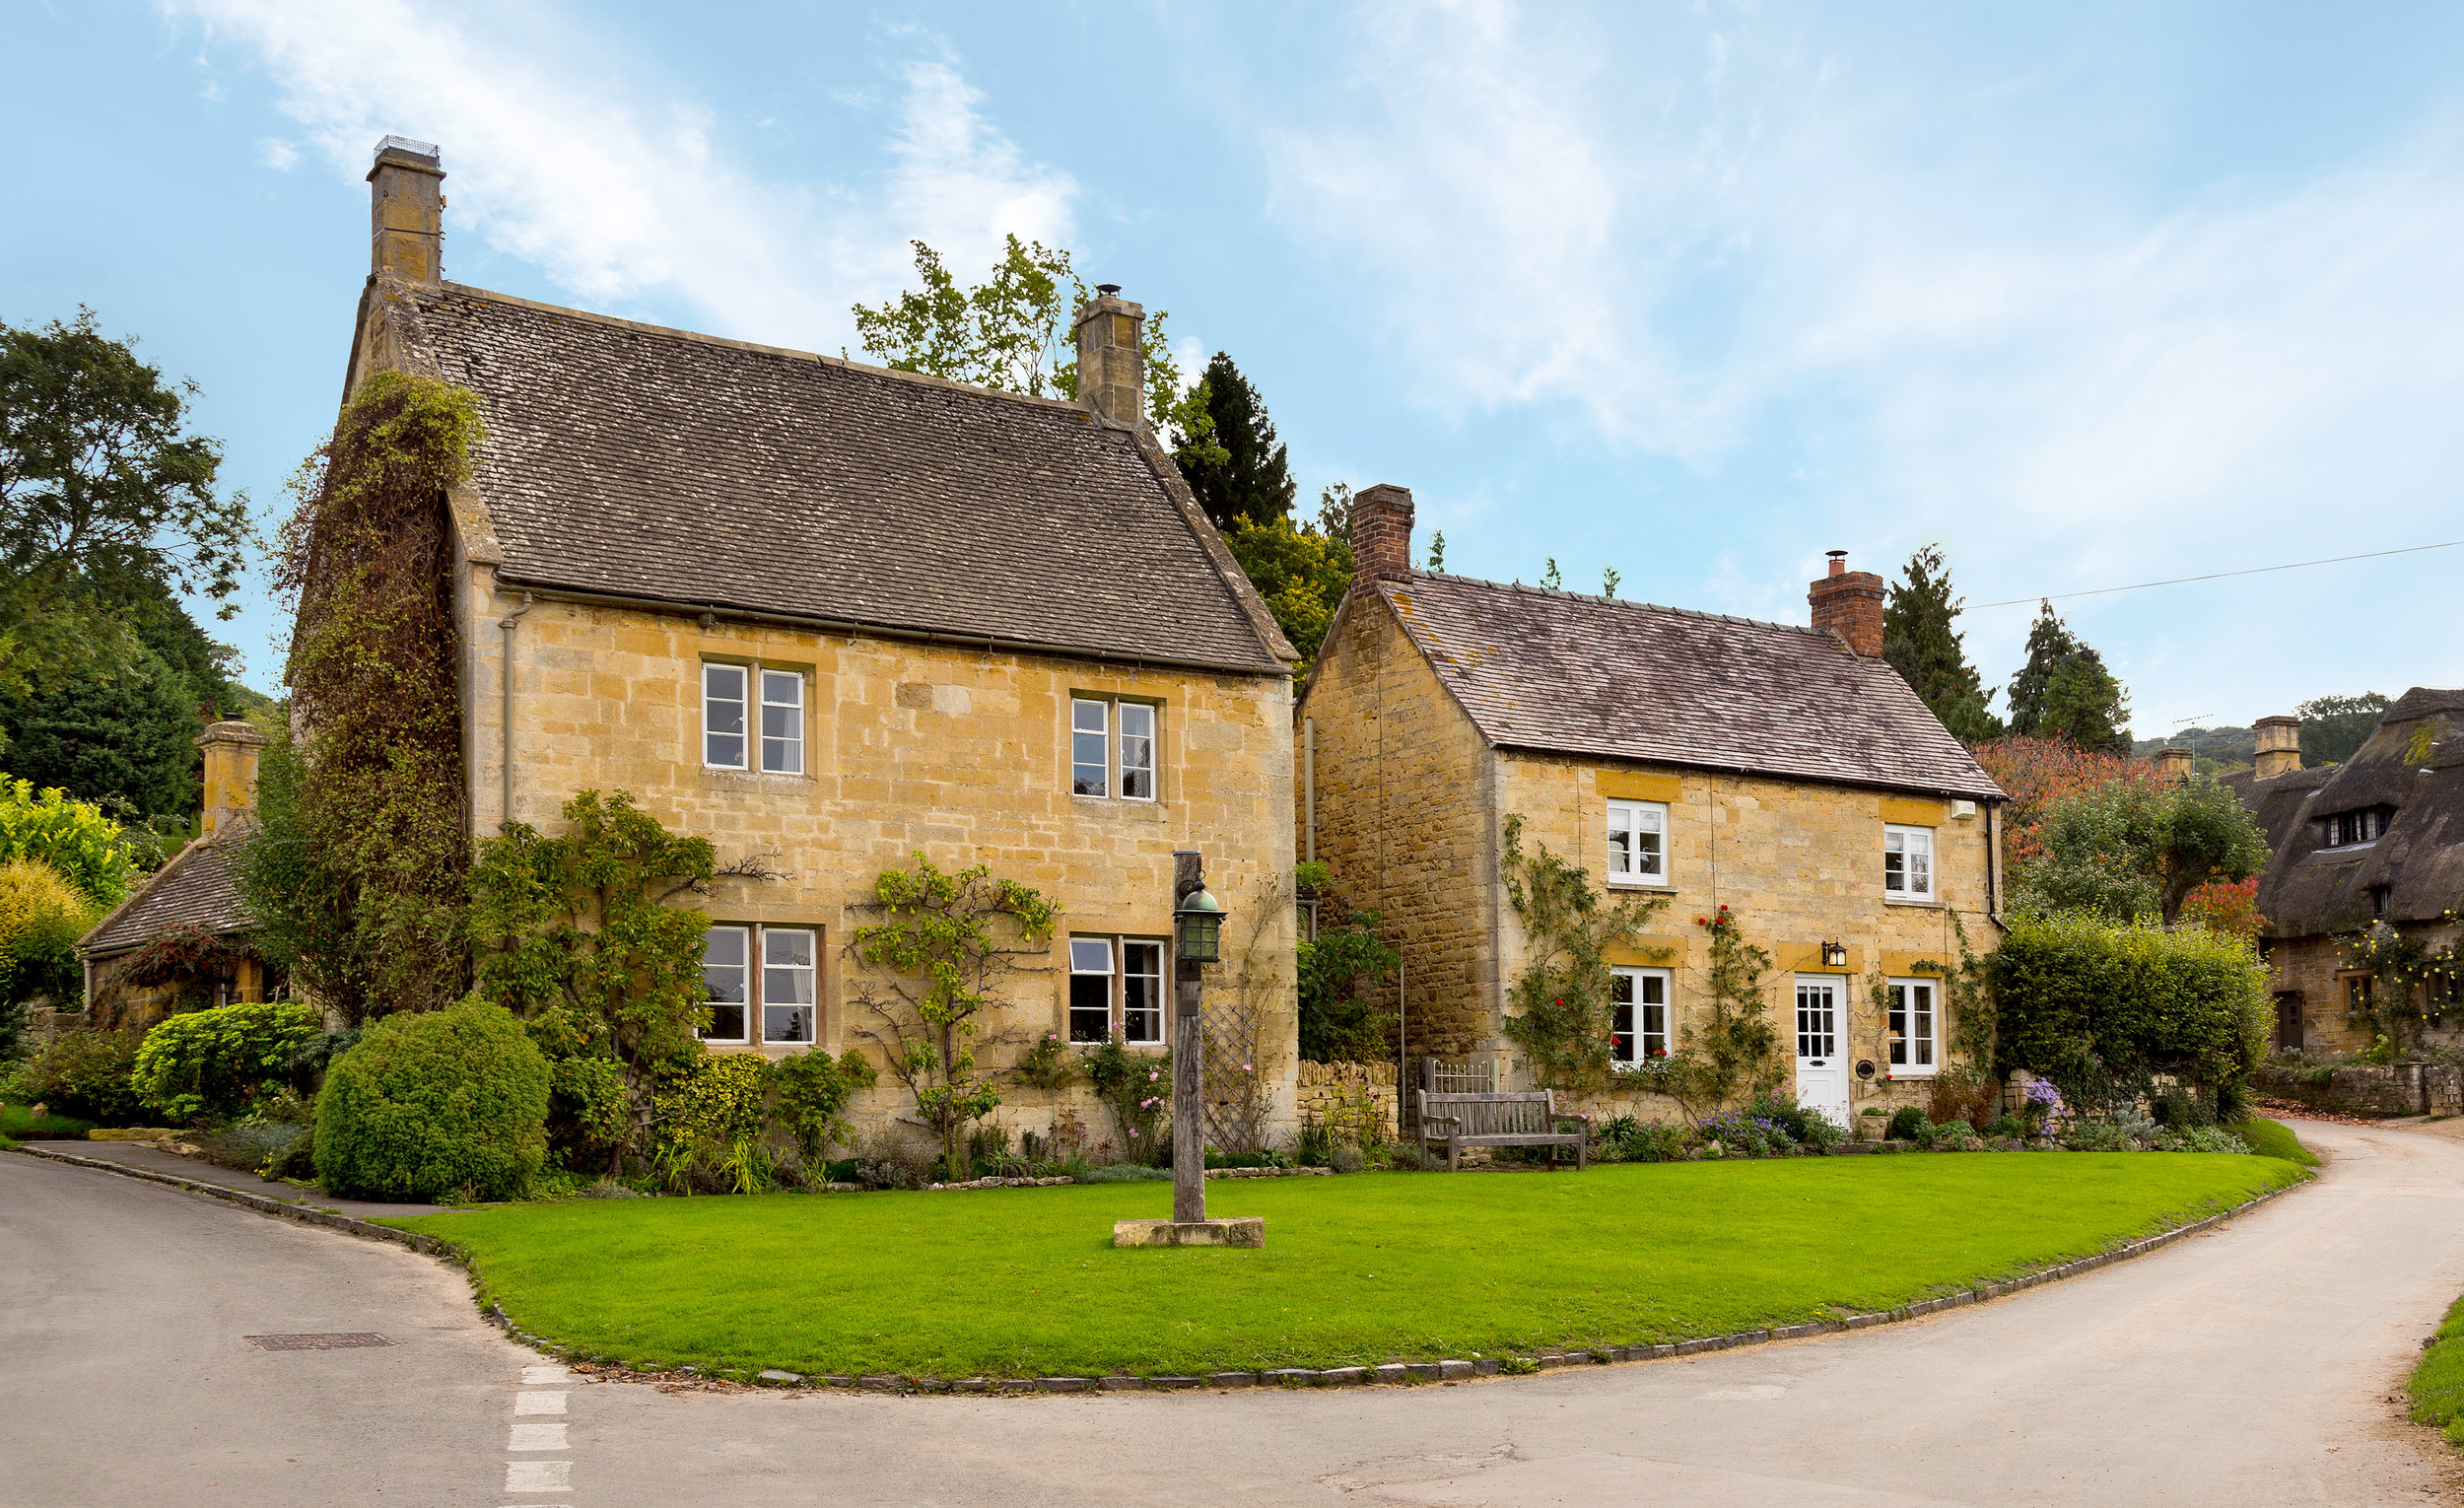 Beautiful sandstone village country cottages on road blue sky retouching